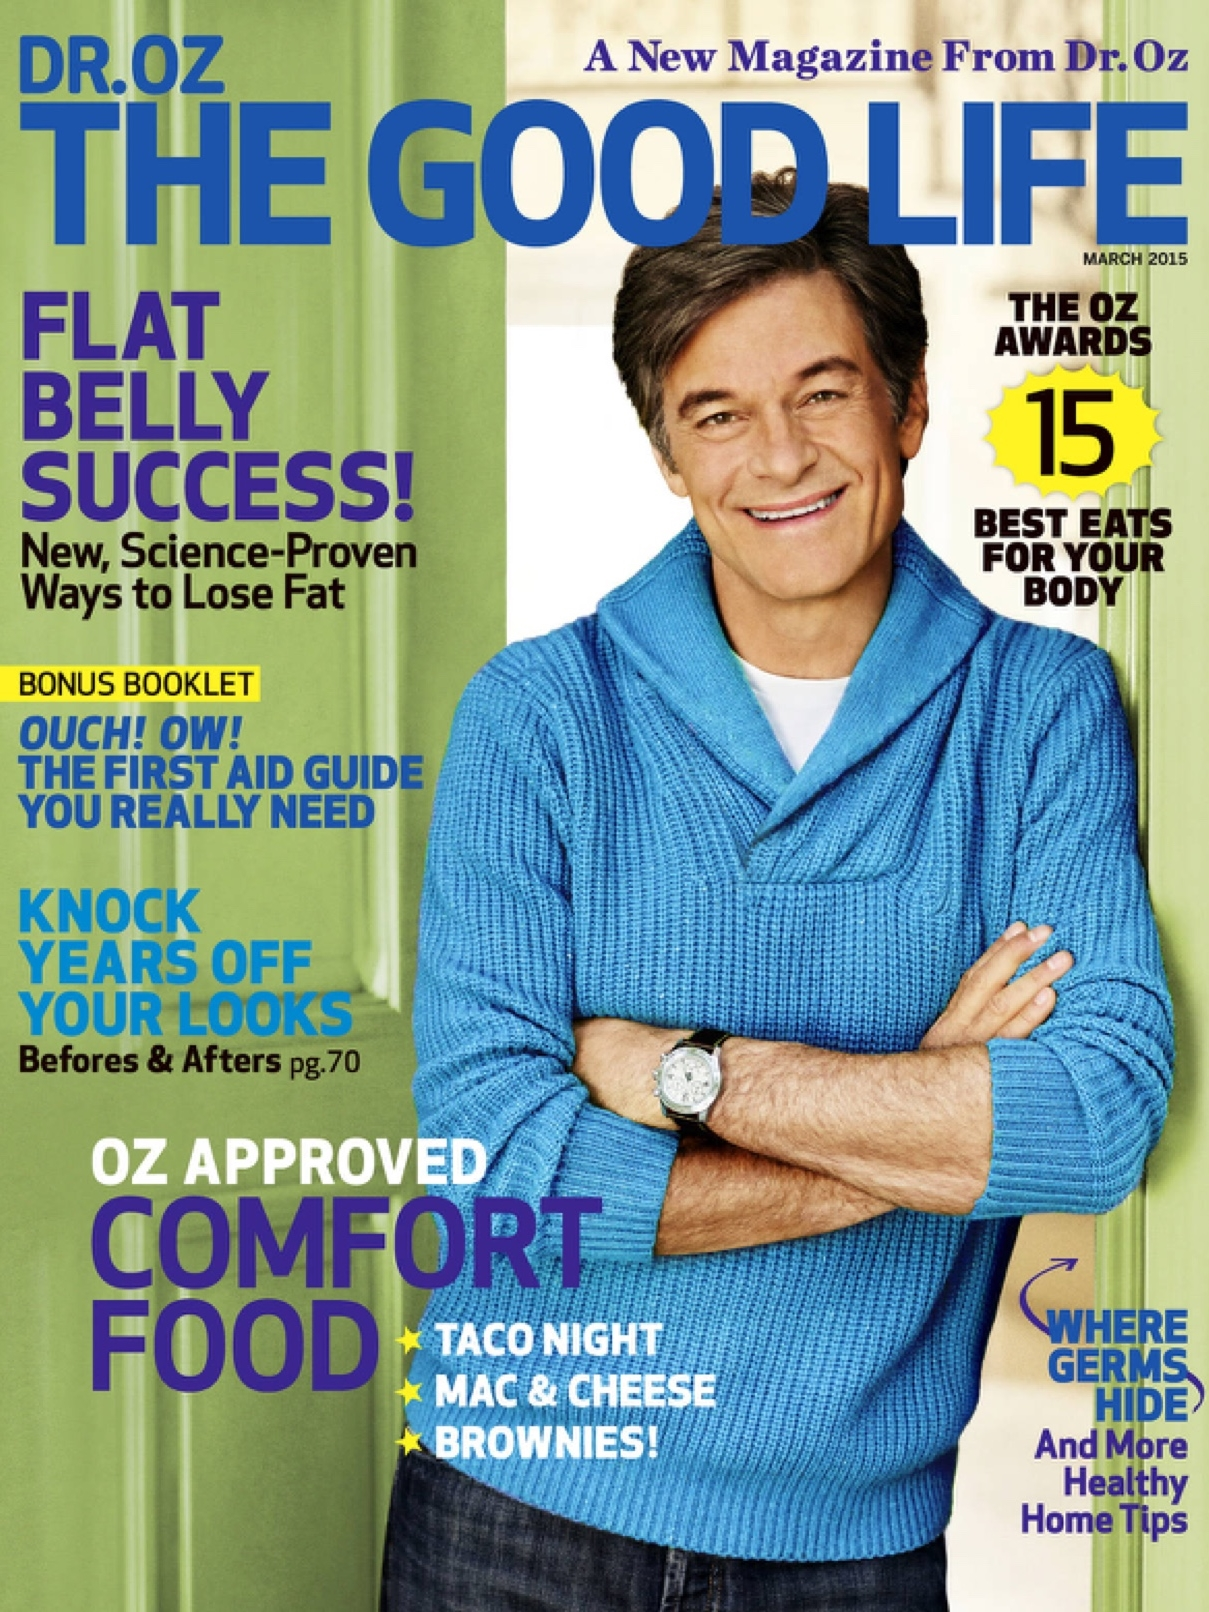 Dr. Oz The Good LIfe, March 2015